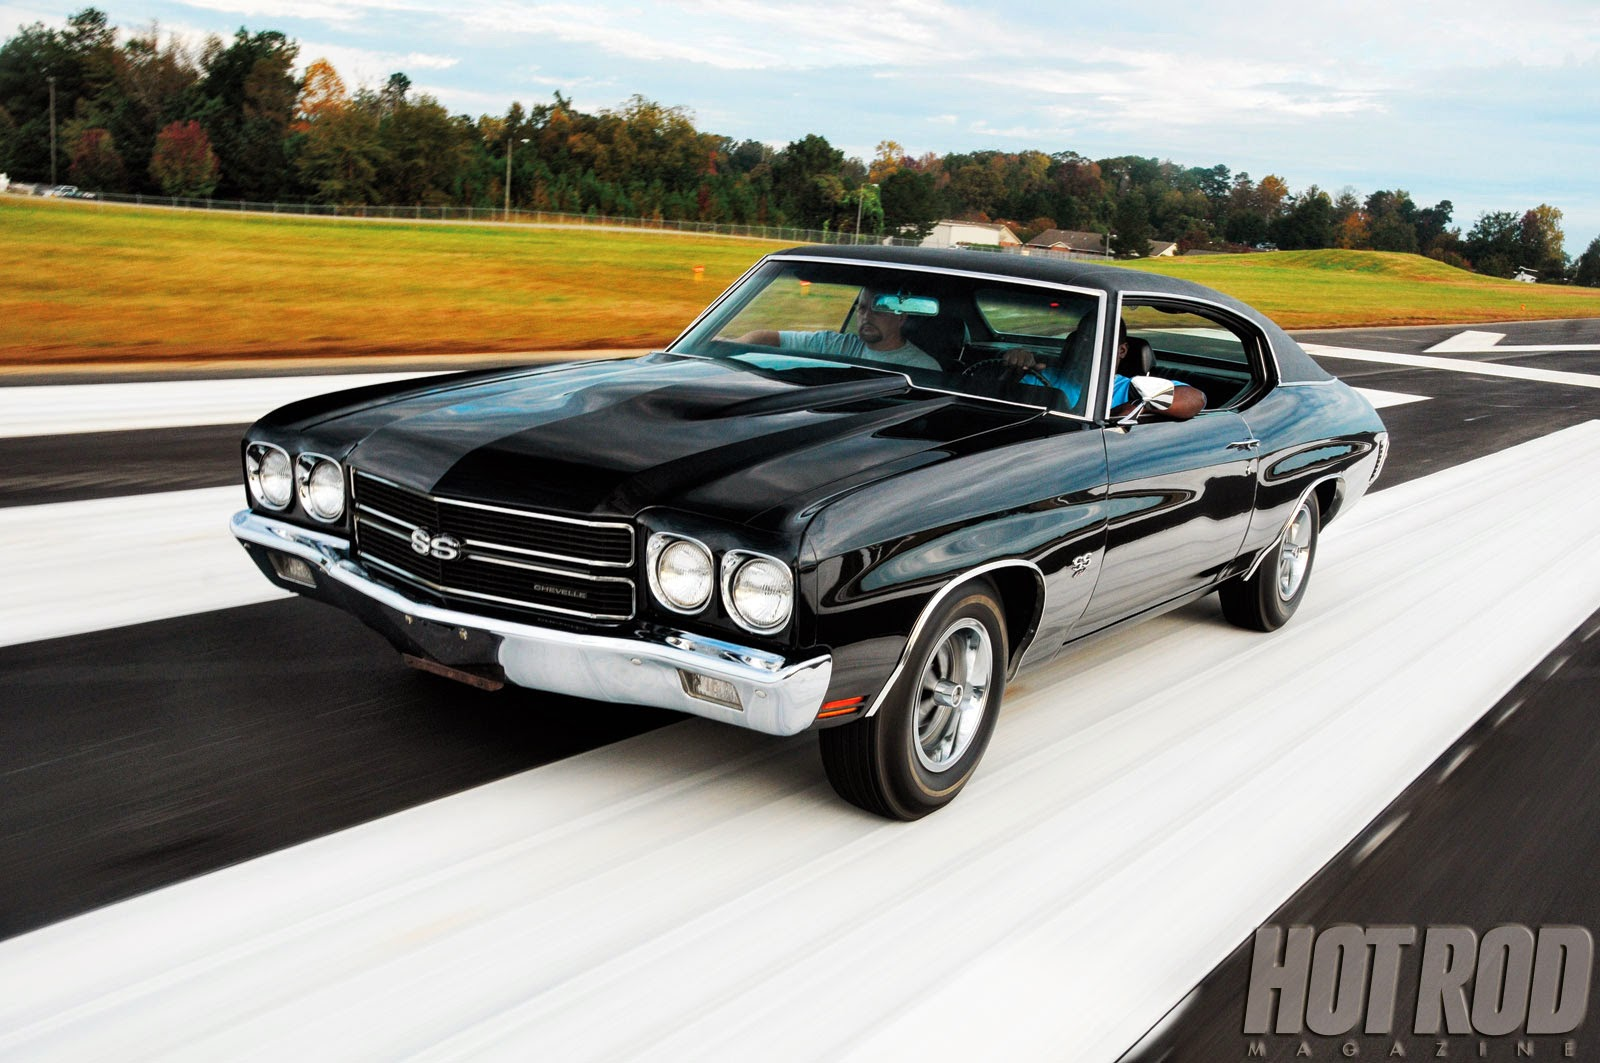 Musclecar Of The Week : 70 Chevelle 454